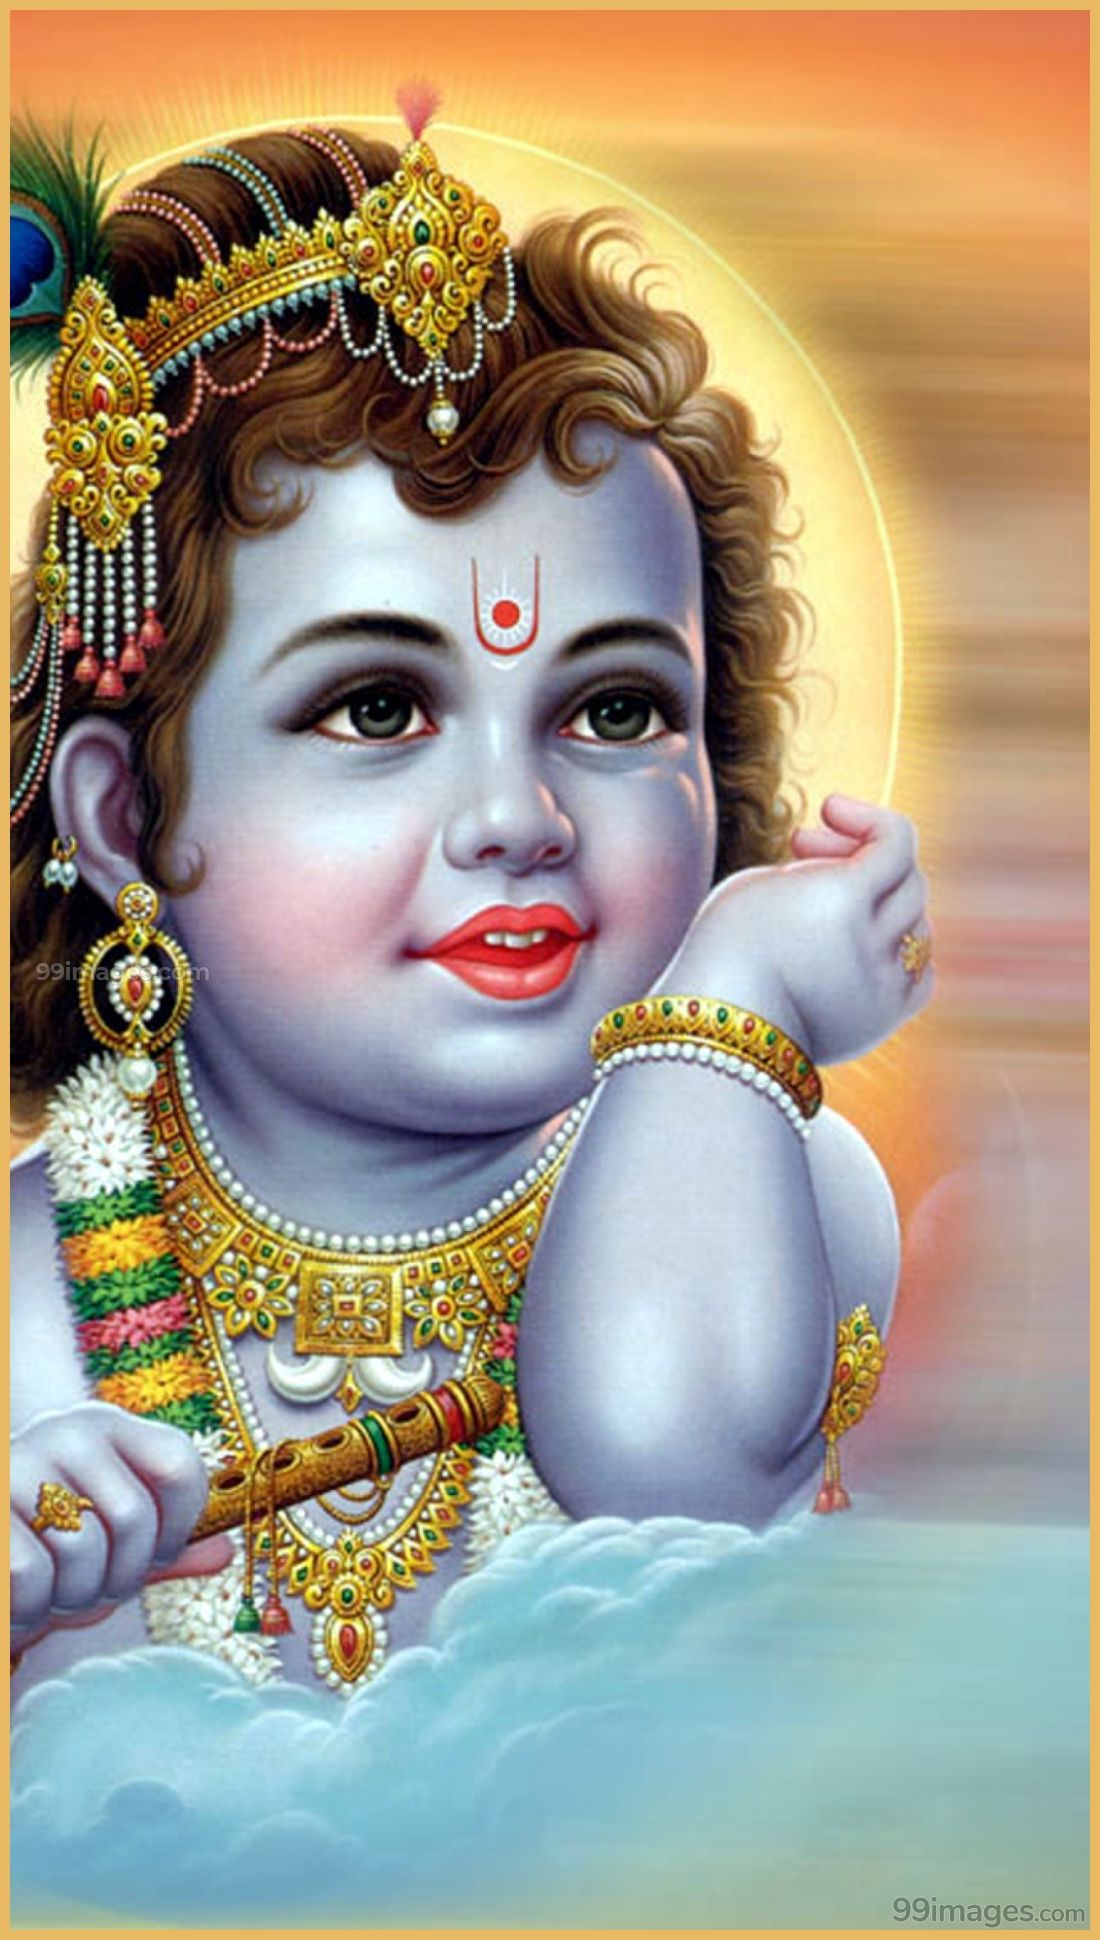 Best Lord Kannan Hd Images 13559 Lordkannan Hindu God Littlekrishna Lord Krishna Wallpapers Lord Krishna Hd Wallpaper Krishna